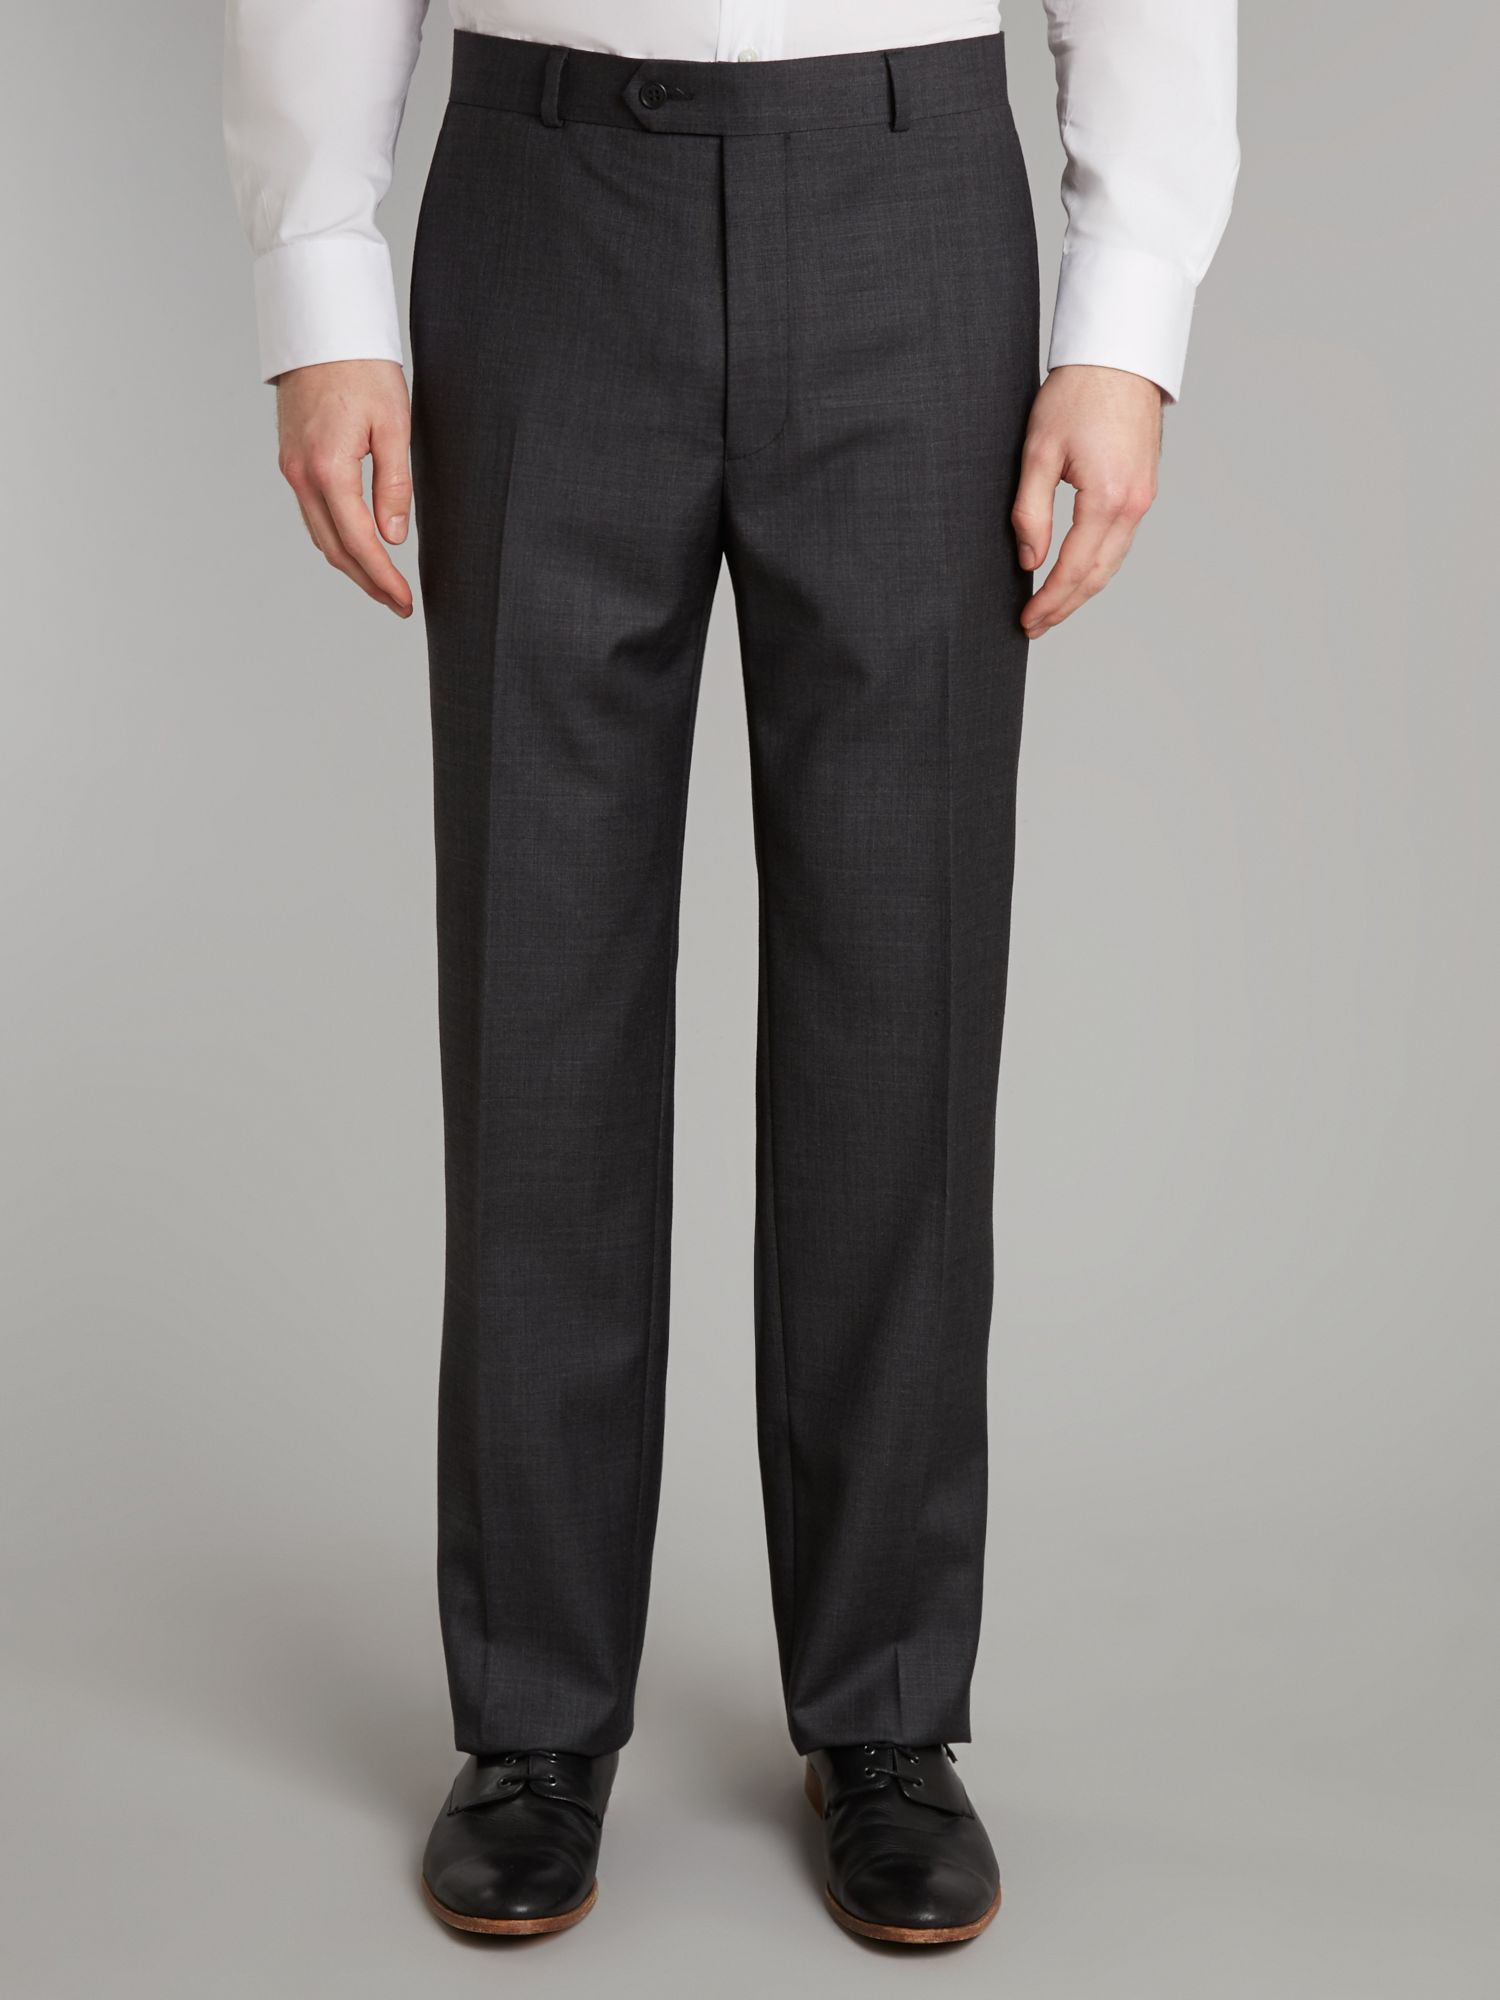 Charcoal sharkskin trousers